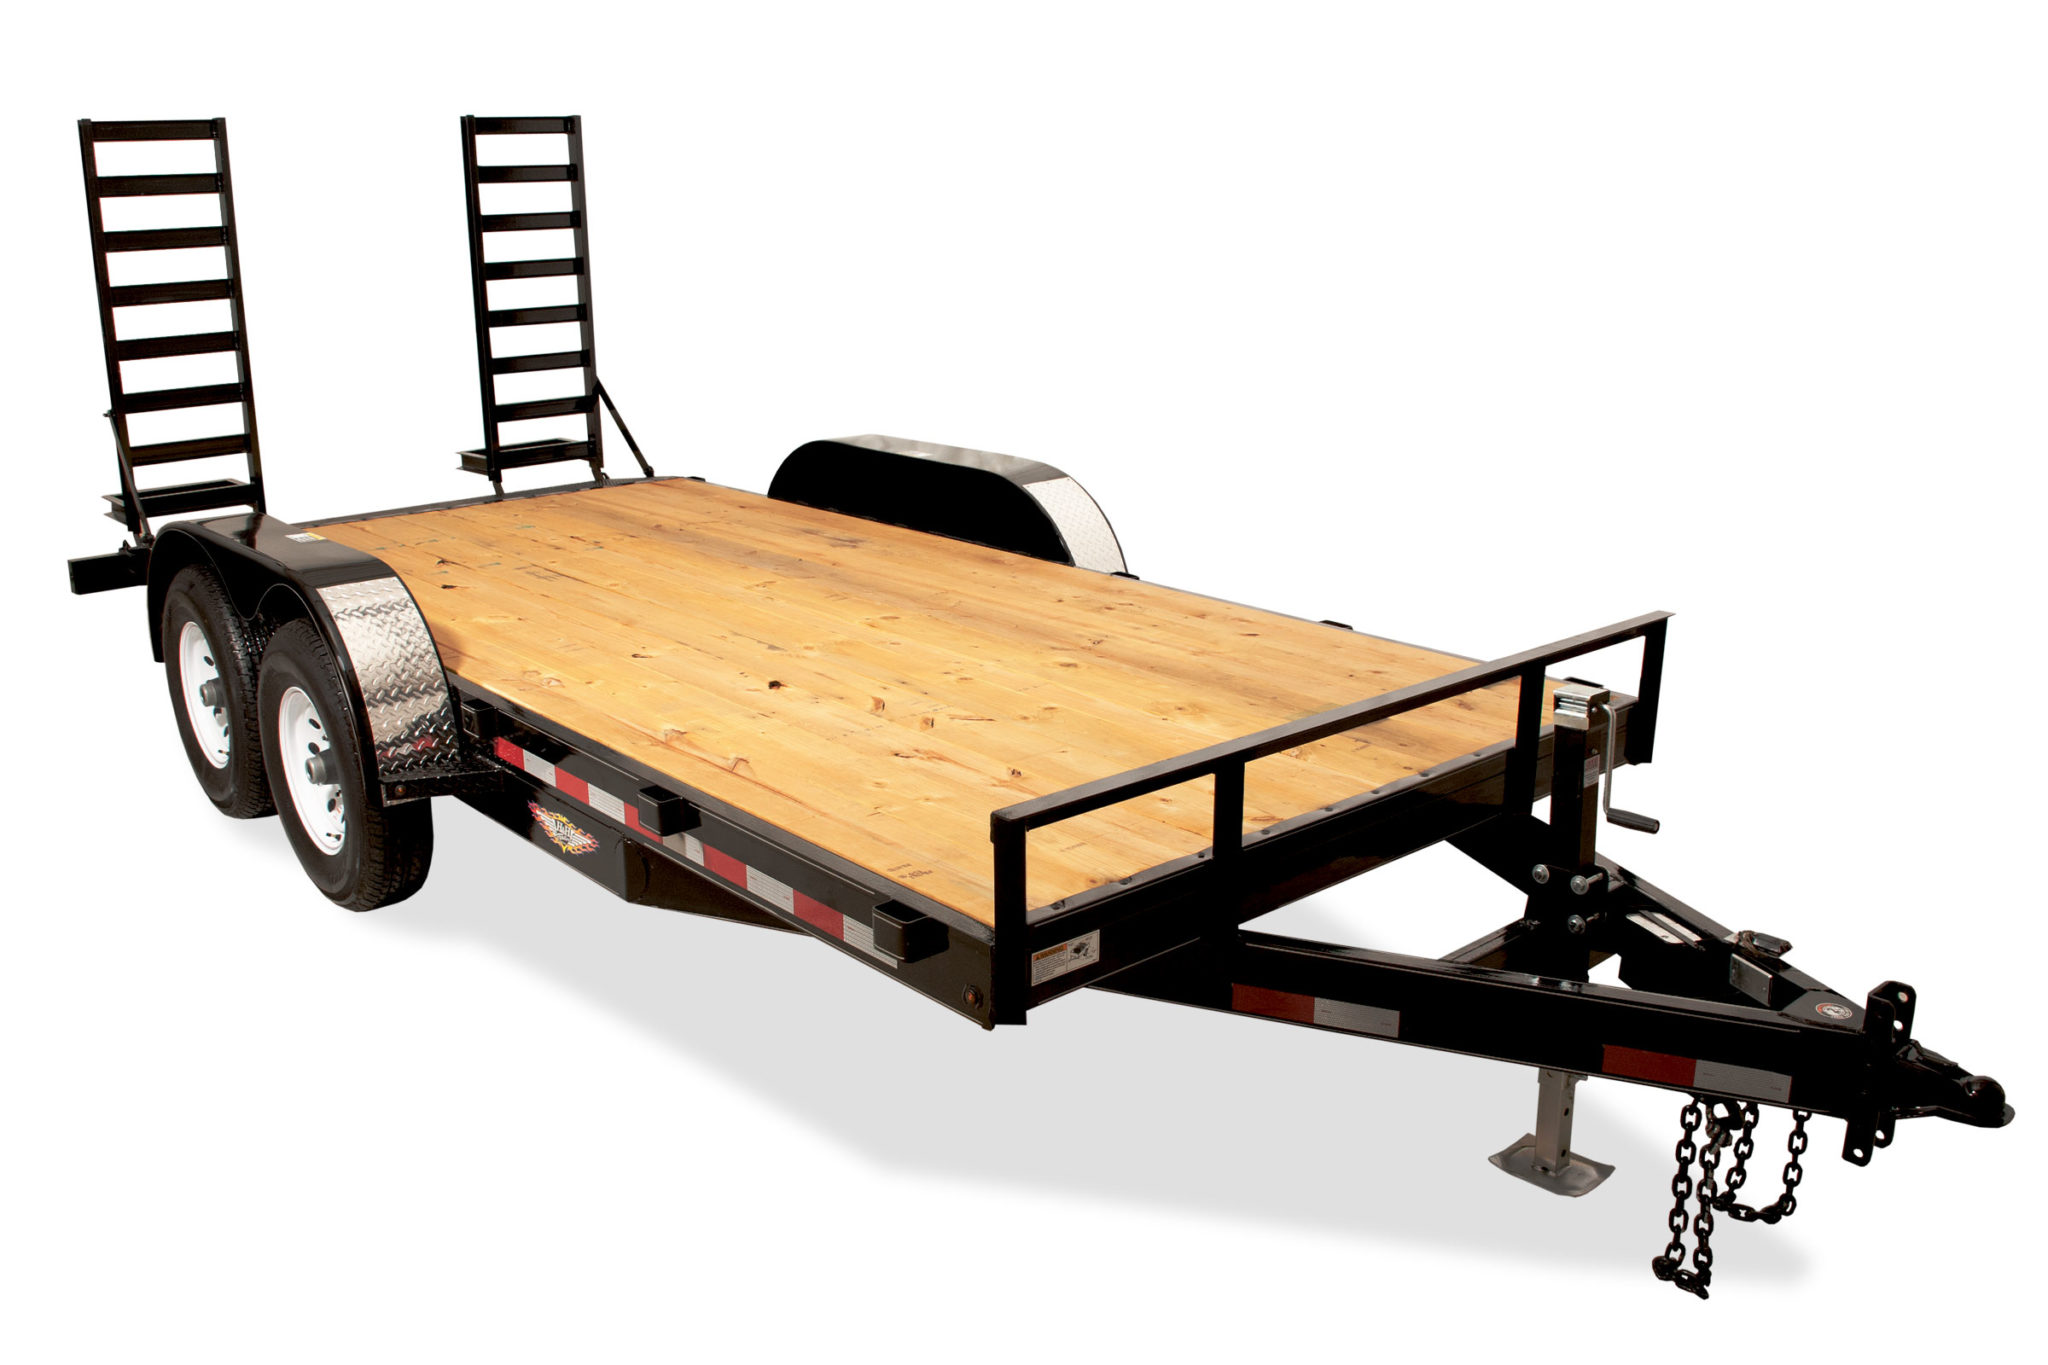 "H&H GENERAL DUTY CAR HAULER TANDEM AXLE H8216+2GDFD-070 82""X16'+2' 7K"